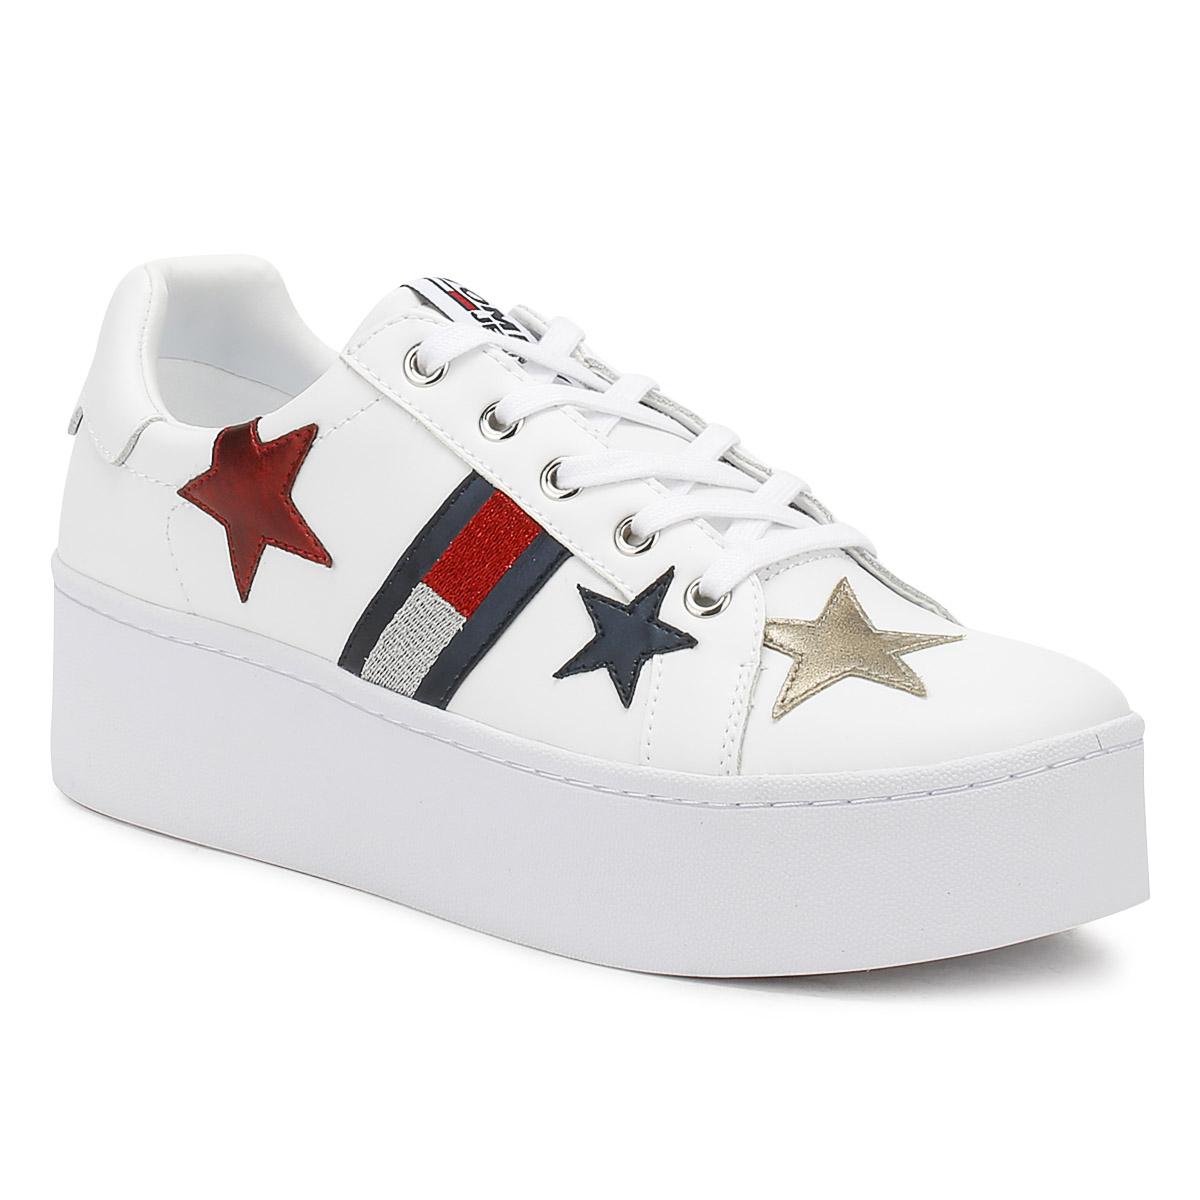 8959c434323fc Tommy Hilfiger Womens Trainers White Jeans Icon Sparkle Lace Up ...